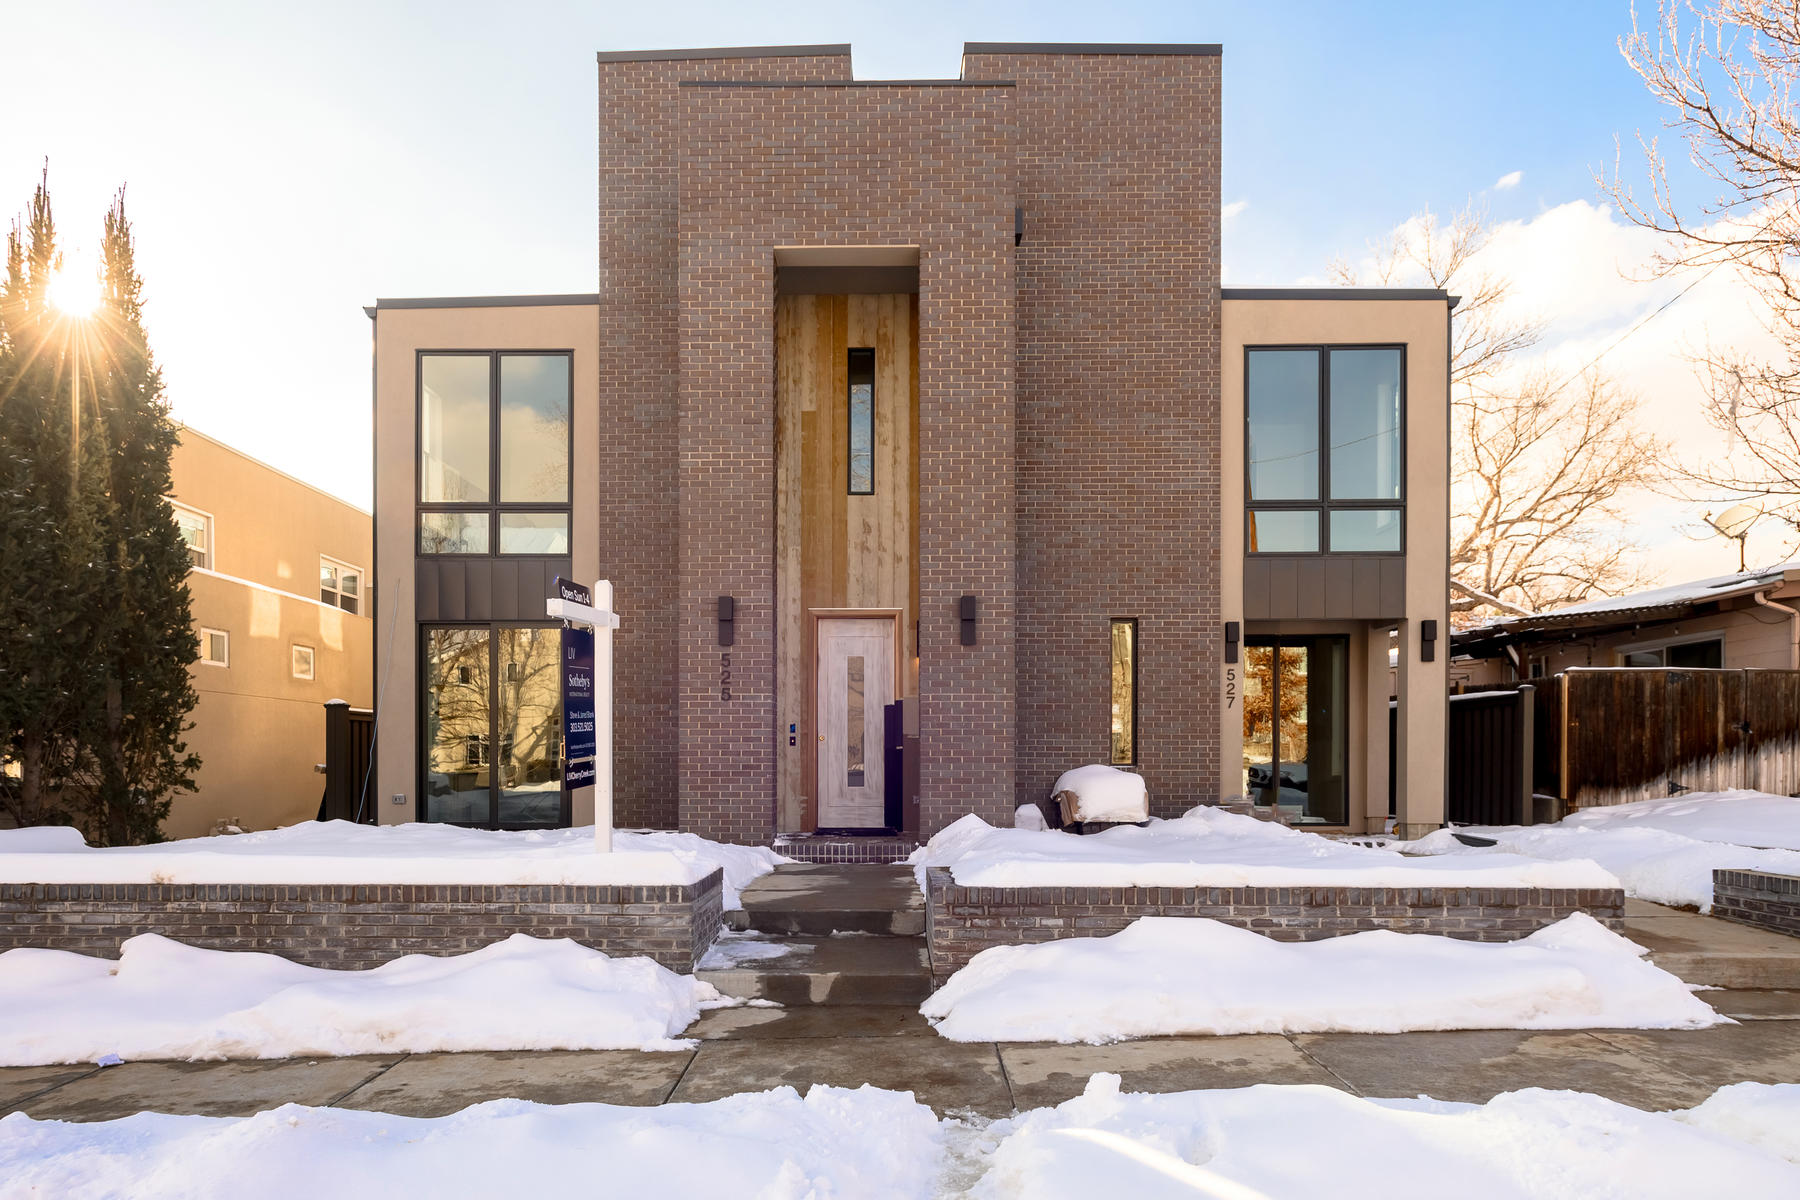 Single Family Homes for Active at 525 Columbine Street Denver, Colorado 80206 United States